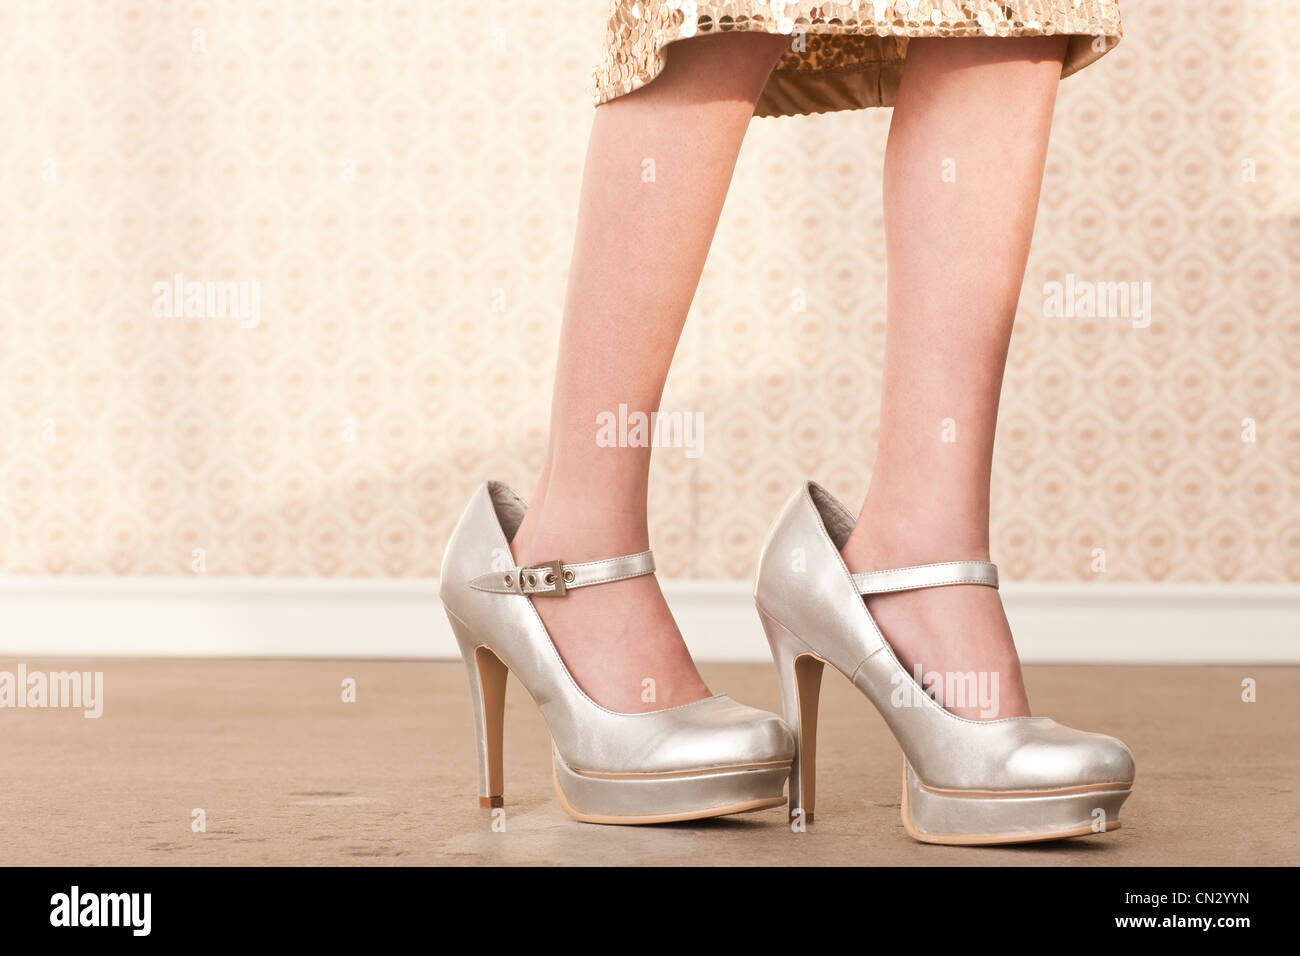 Girl wearing her mother's high heels - Stock Image